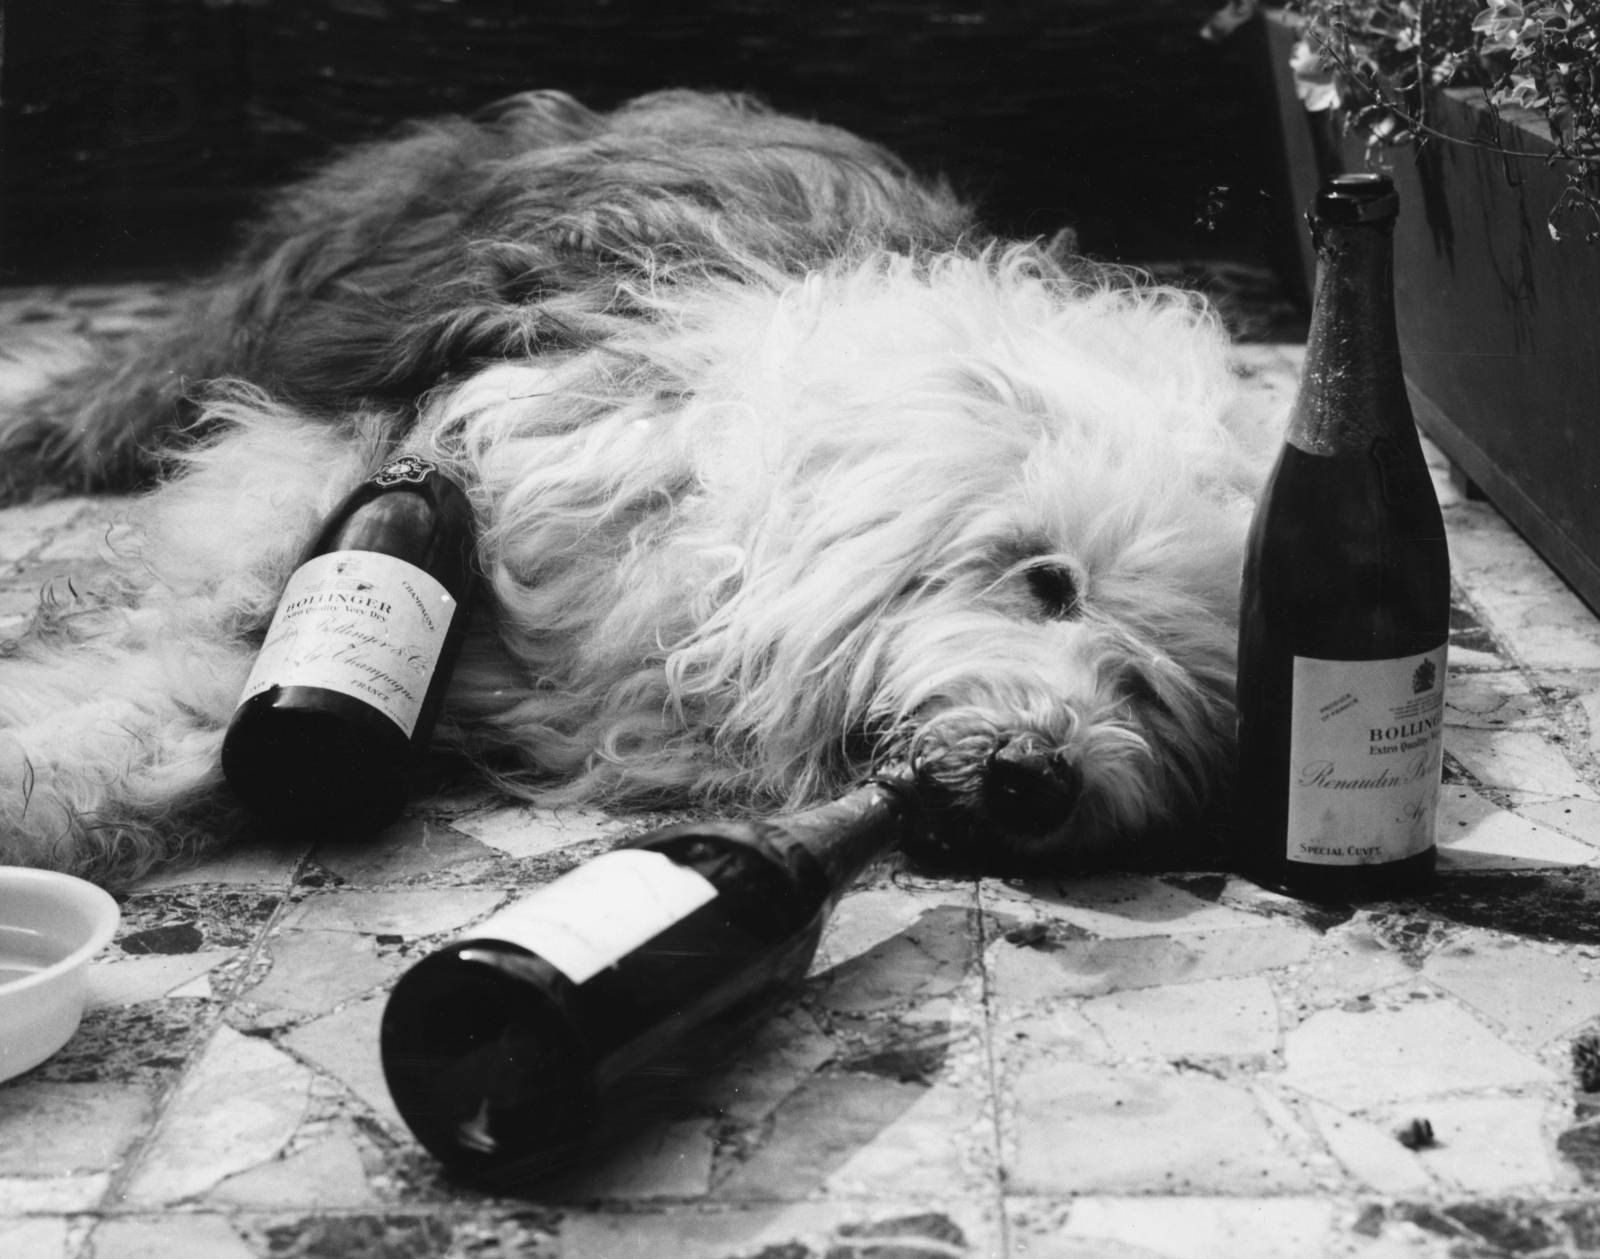 Dog lying next to bottles of champagne